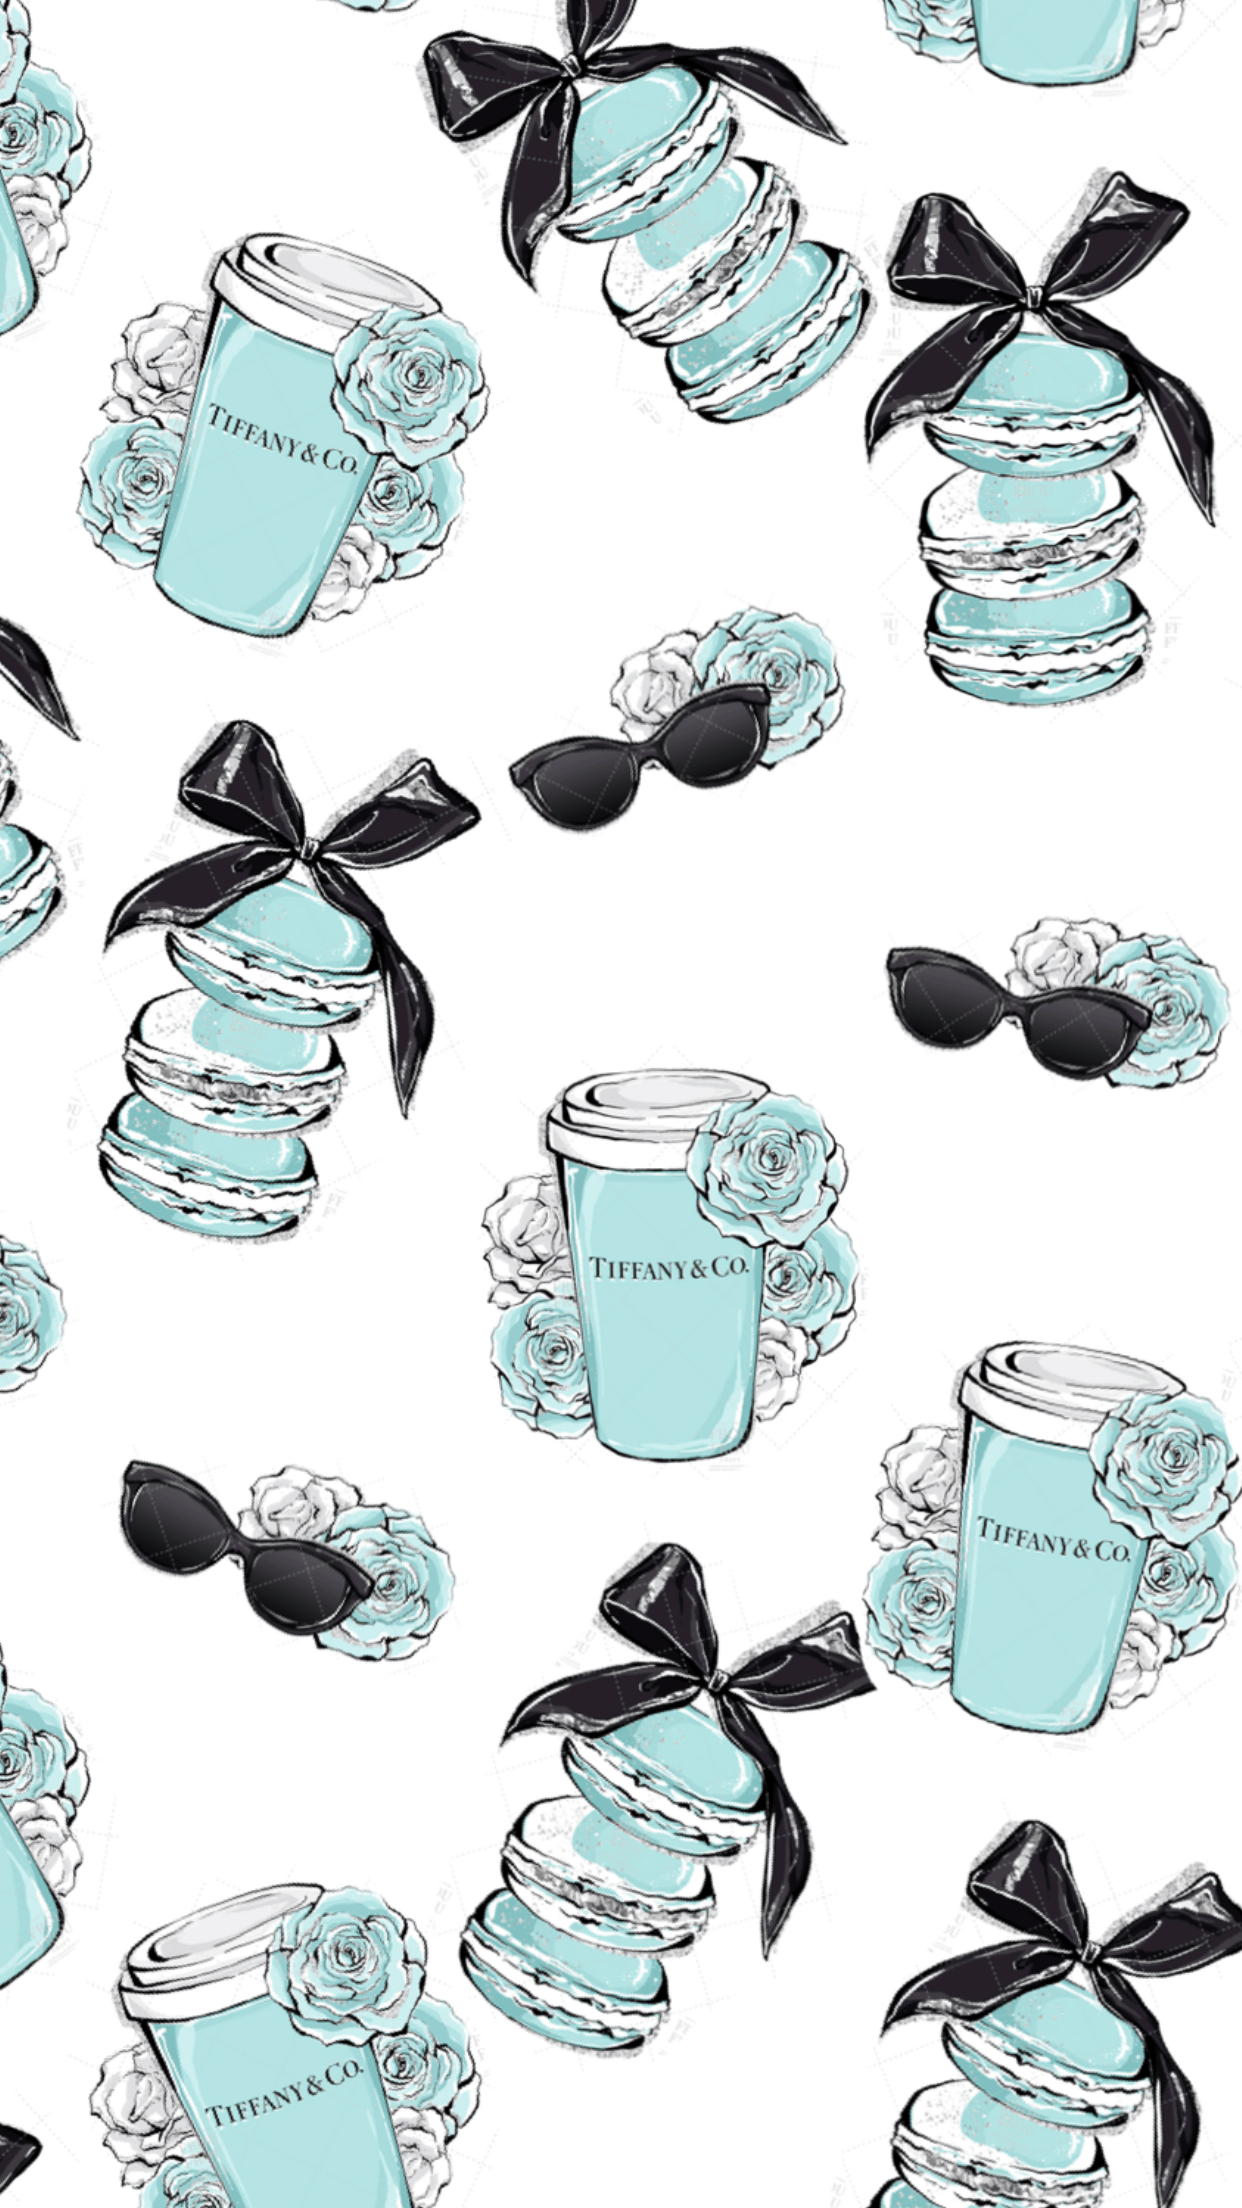 Tiffany & Co | Art in 2019 | Pinterest | Iphone wallpaper, Wallpaper ...